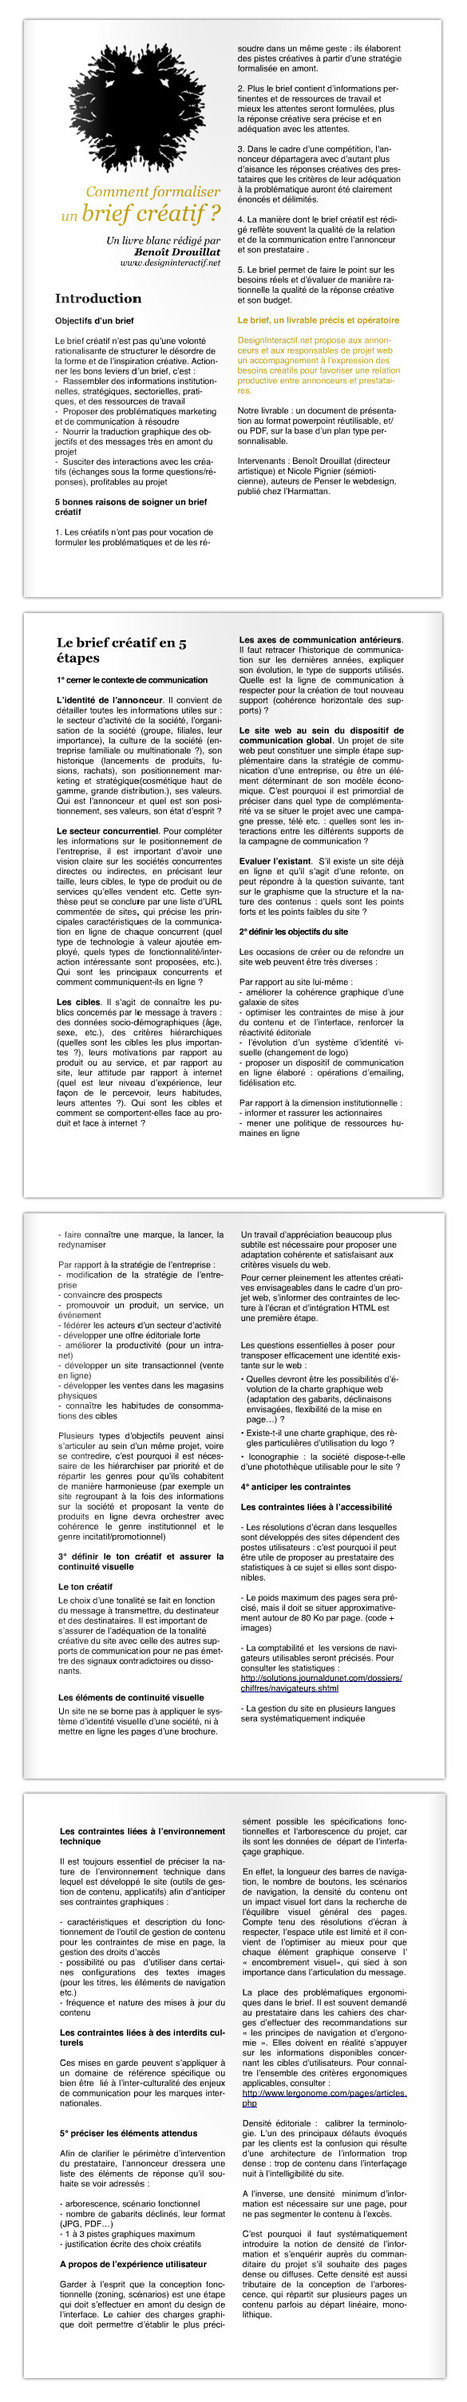 Comment Formaliser Un Brief Créatif — [Naro] Minded | Time to Learn | Scoop.it